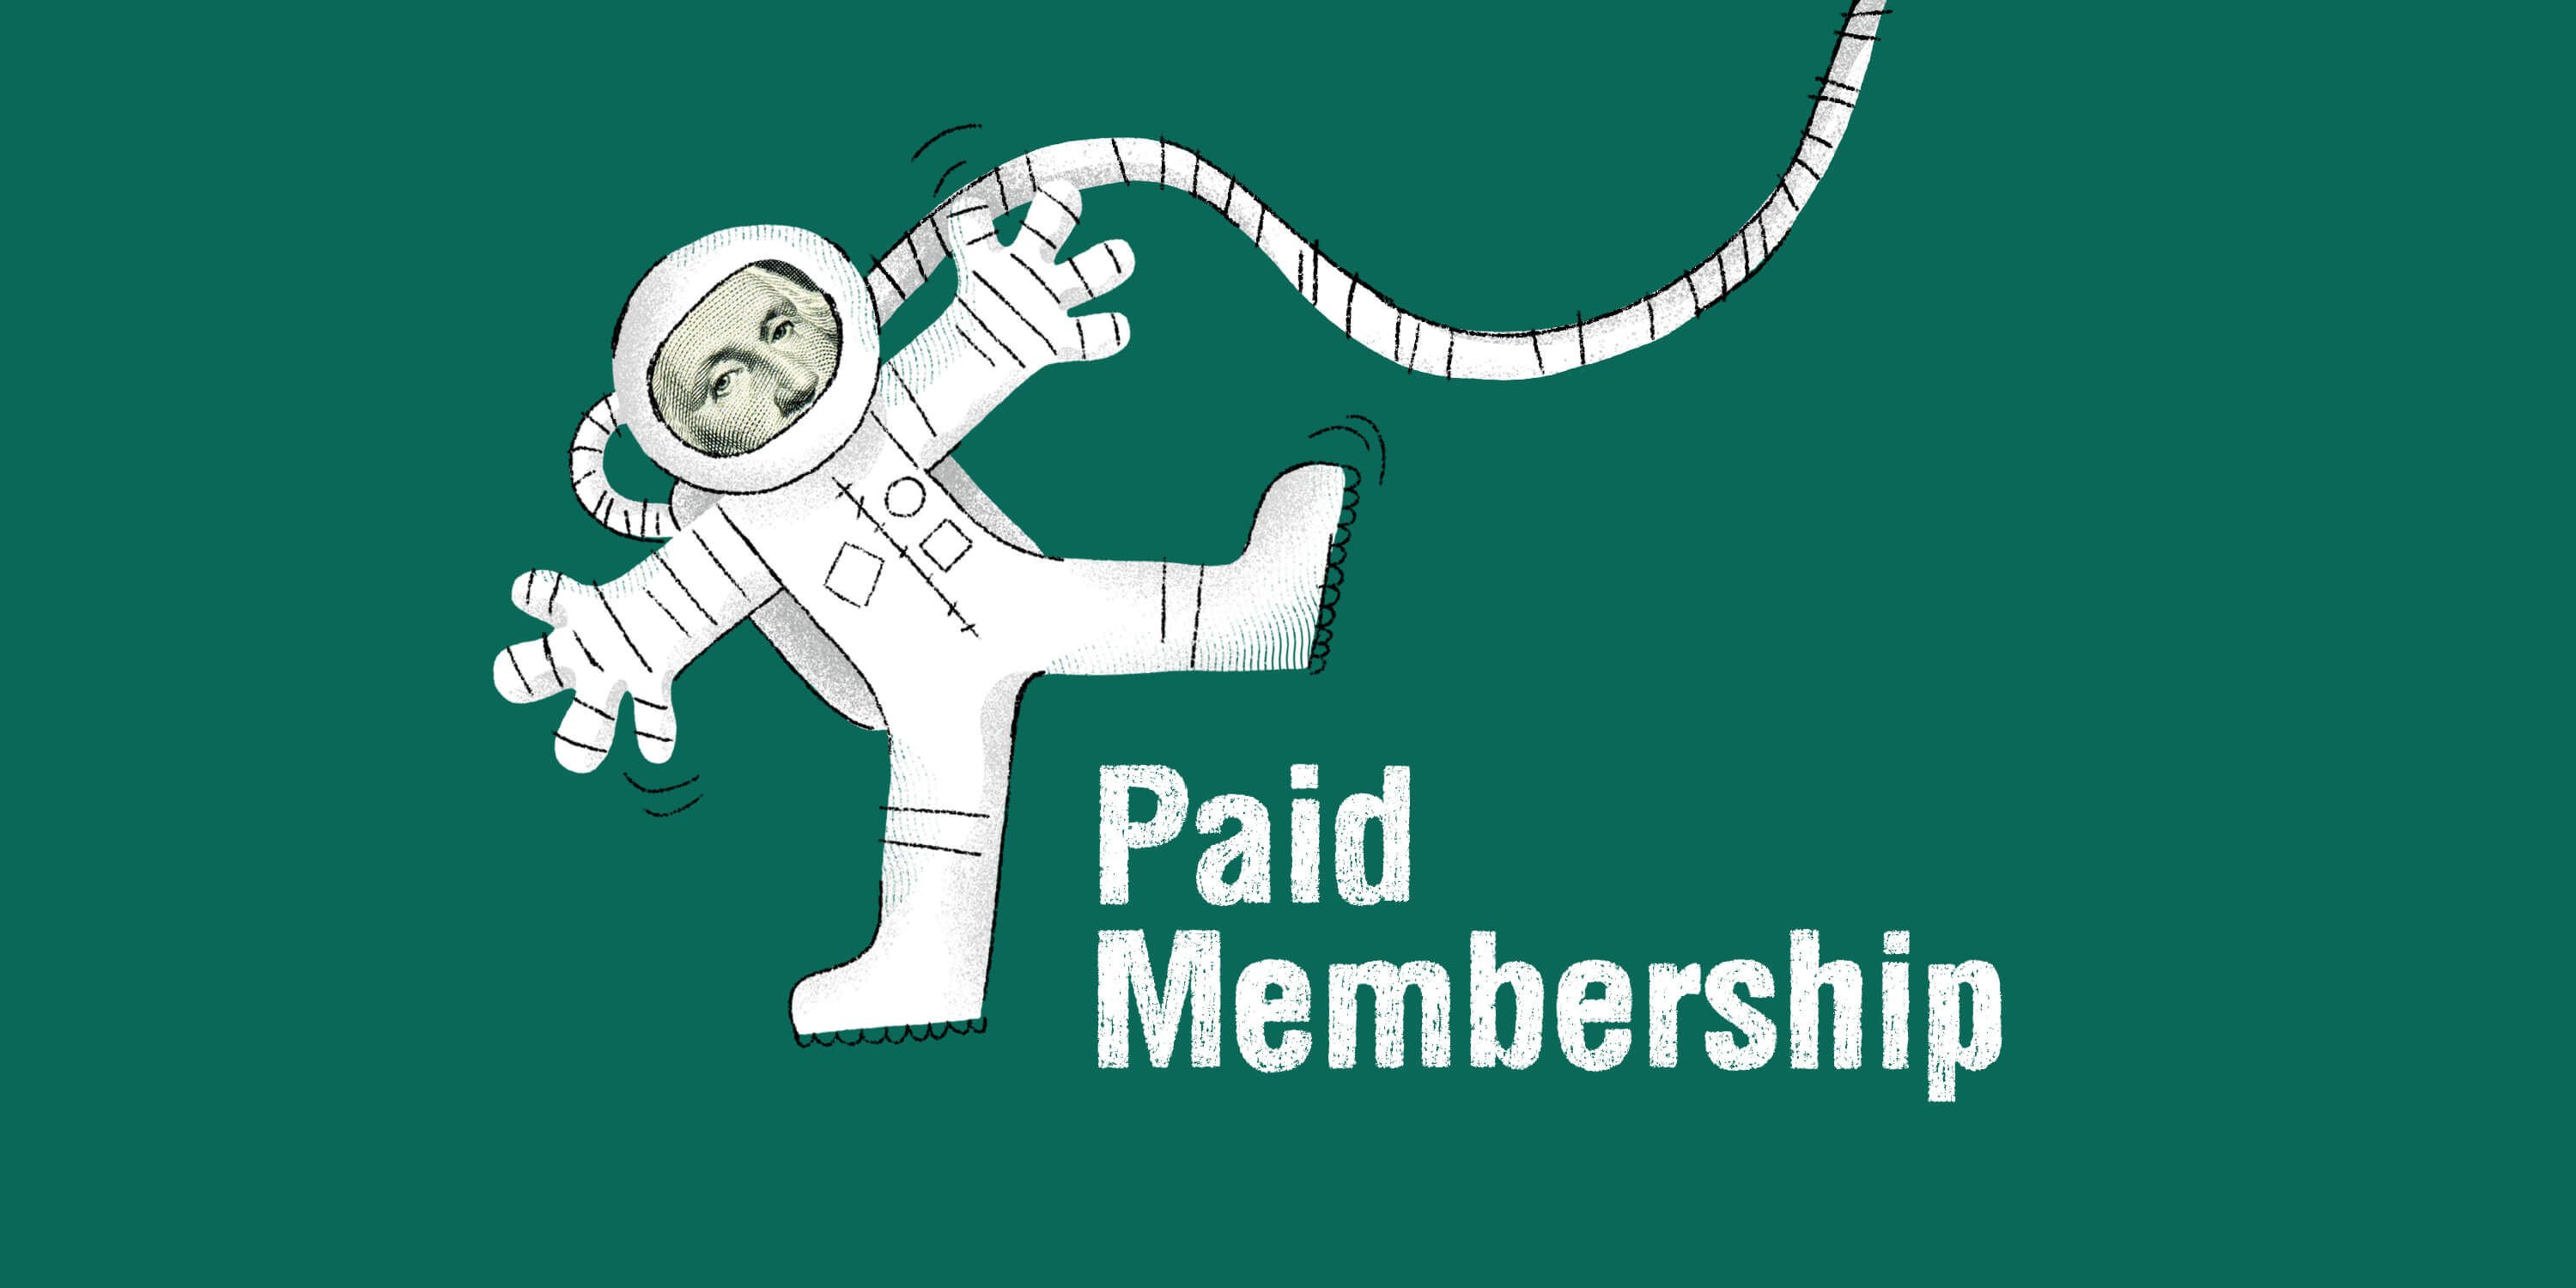 """Astronaut with George Washington face illustration that says """"Paid Membership"""""""